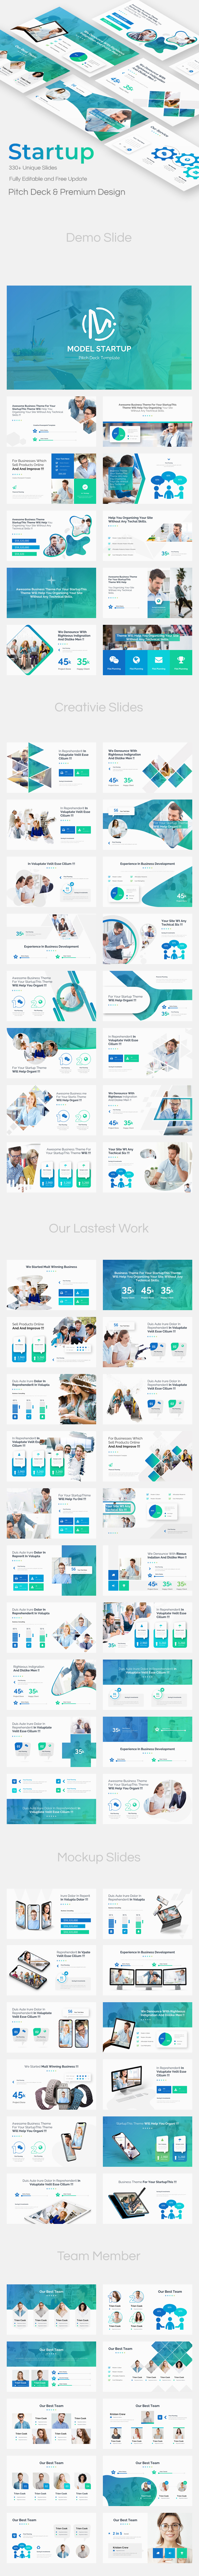 Model Startup Pitch Deck Powerpoint Template